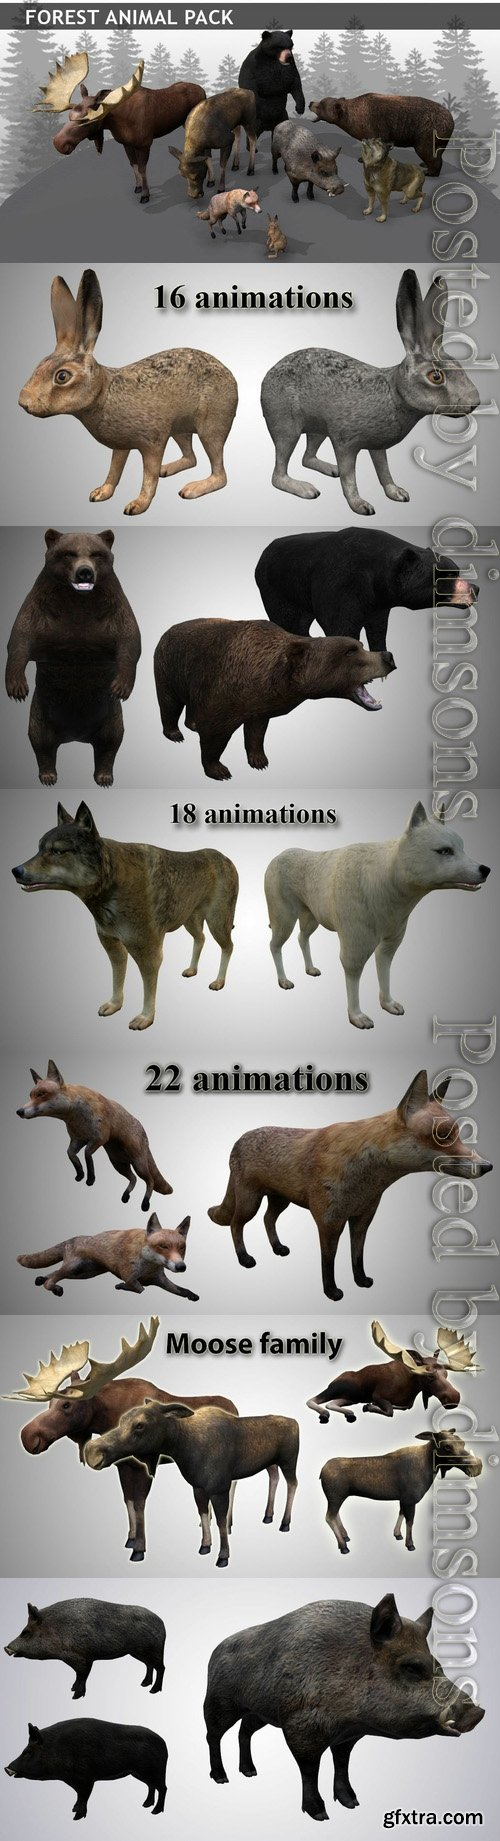 Cgtrader - Forest animals pack Low-poly 3D model